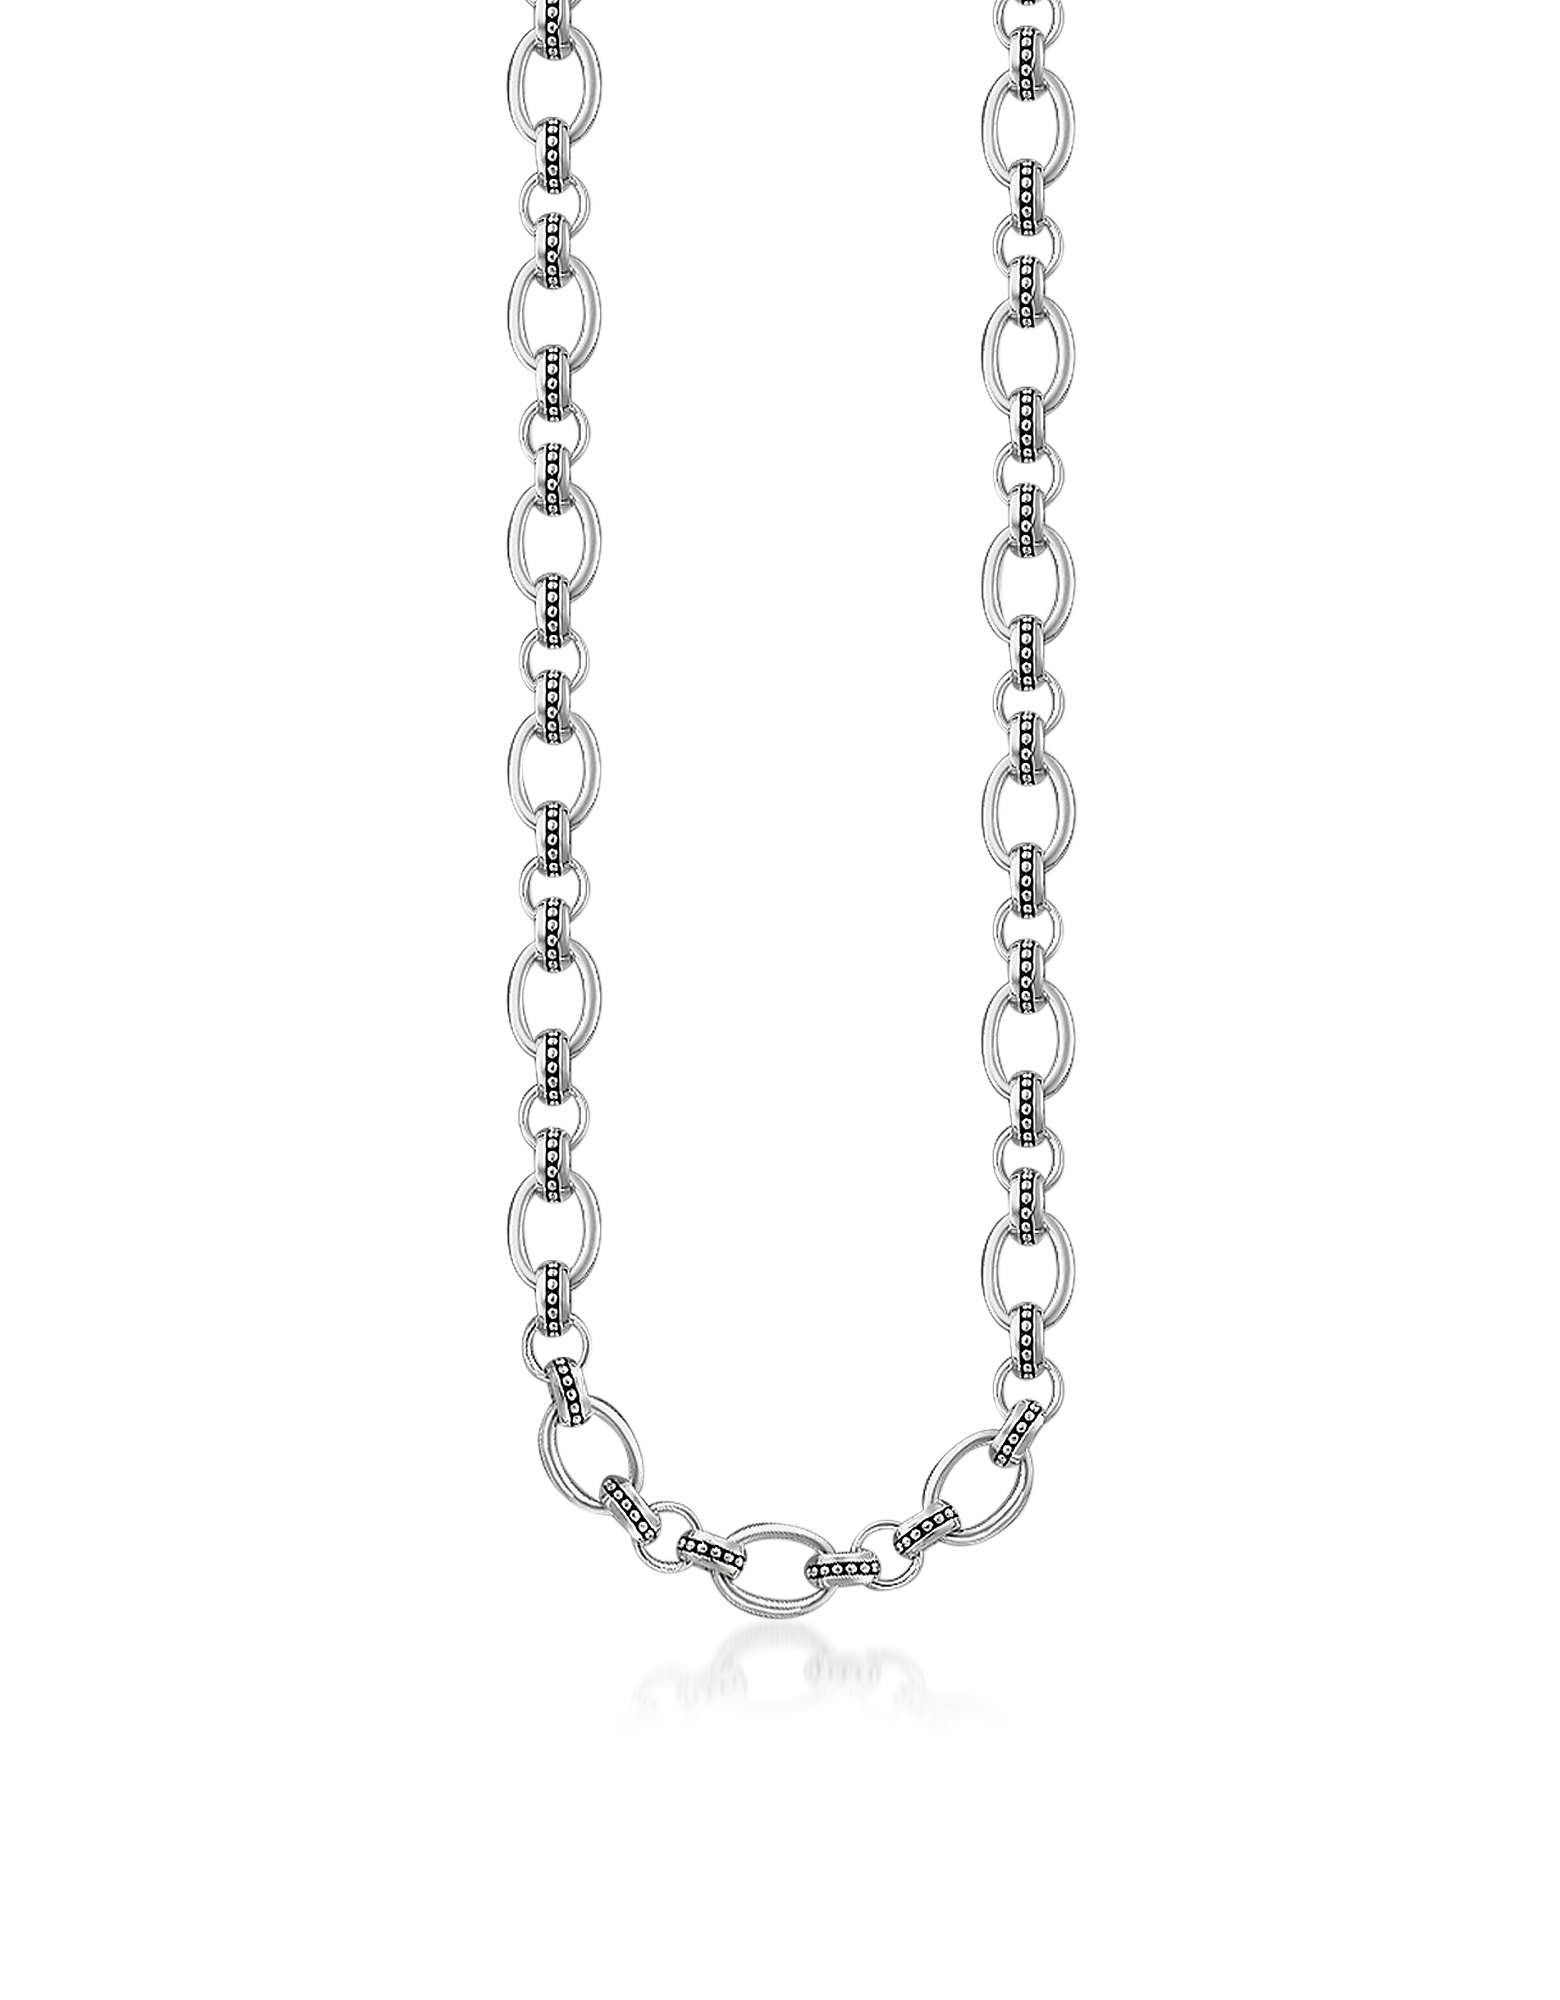 Blackened Sterling Silver Rivet Look Necklace